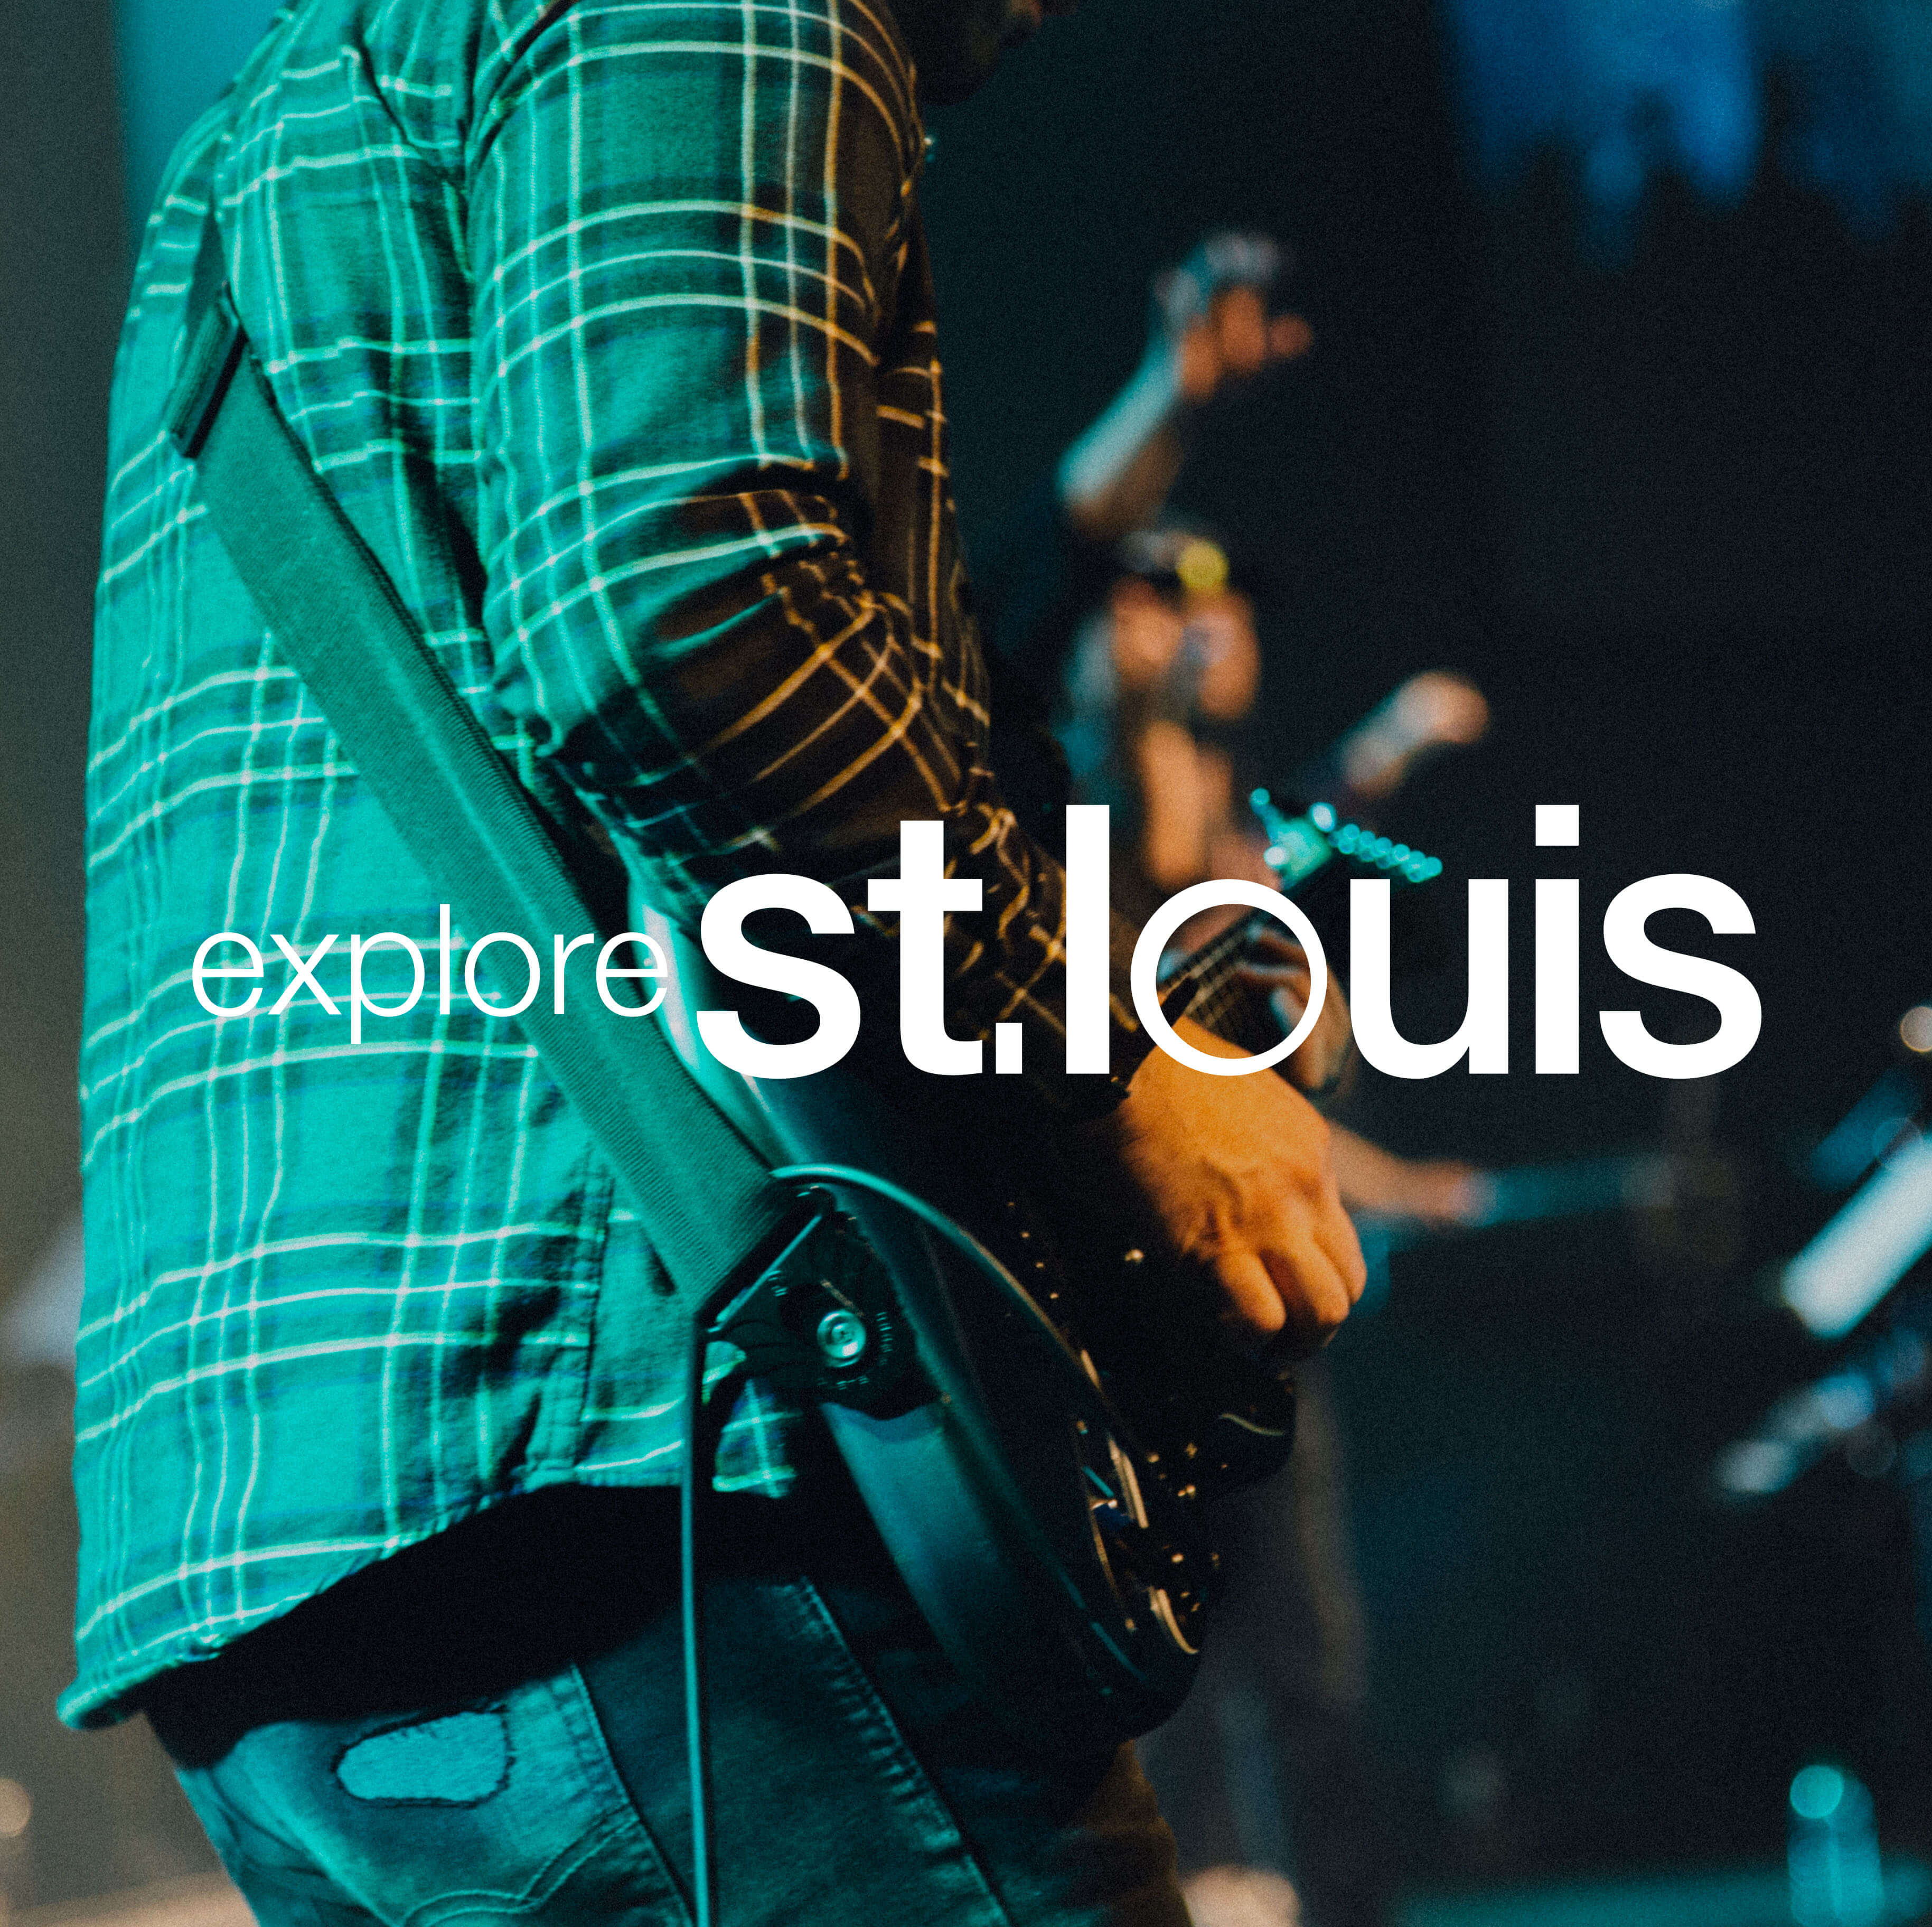 Close up shot of band member playing guitar in St. Louis, with logo over top